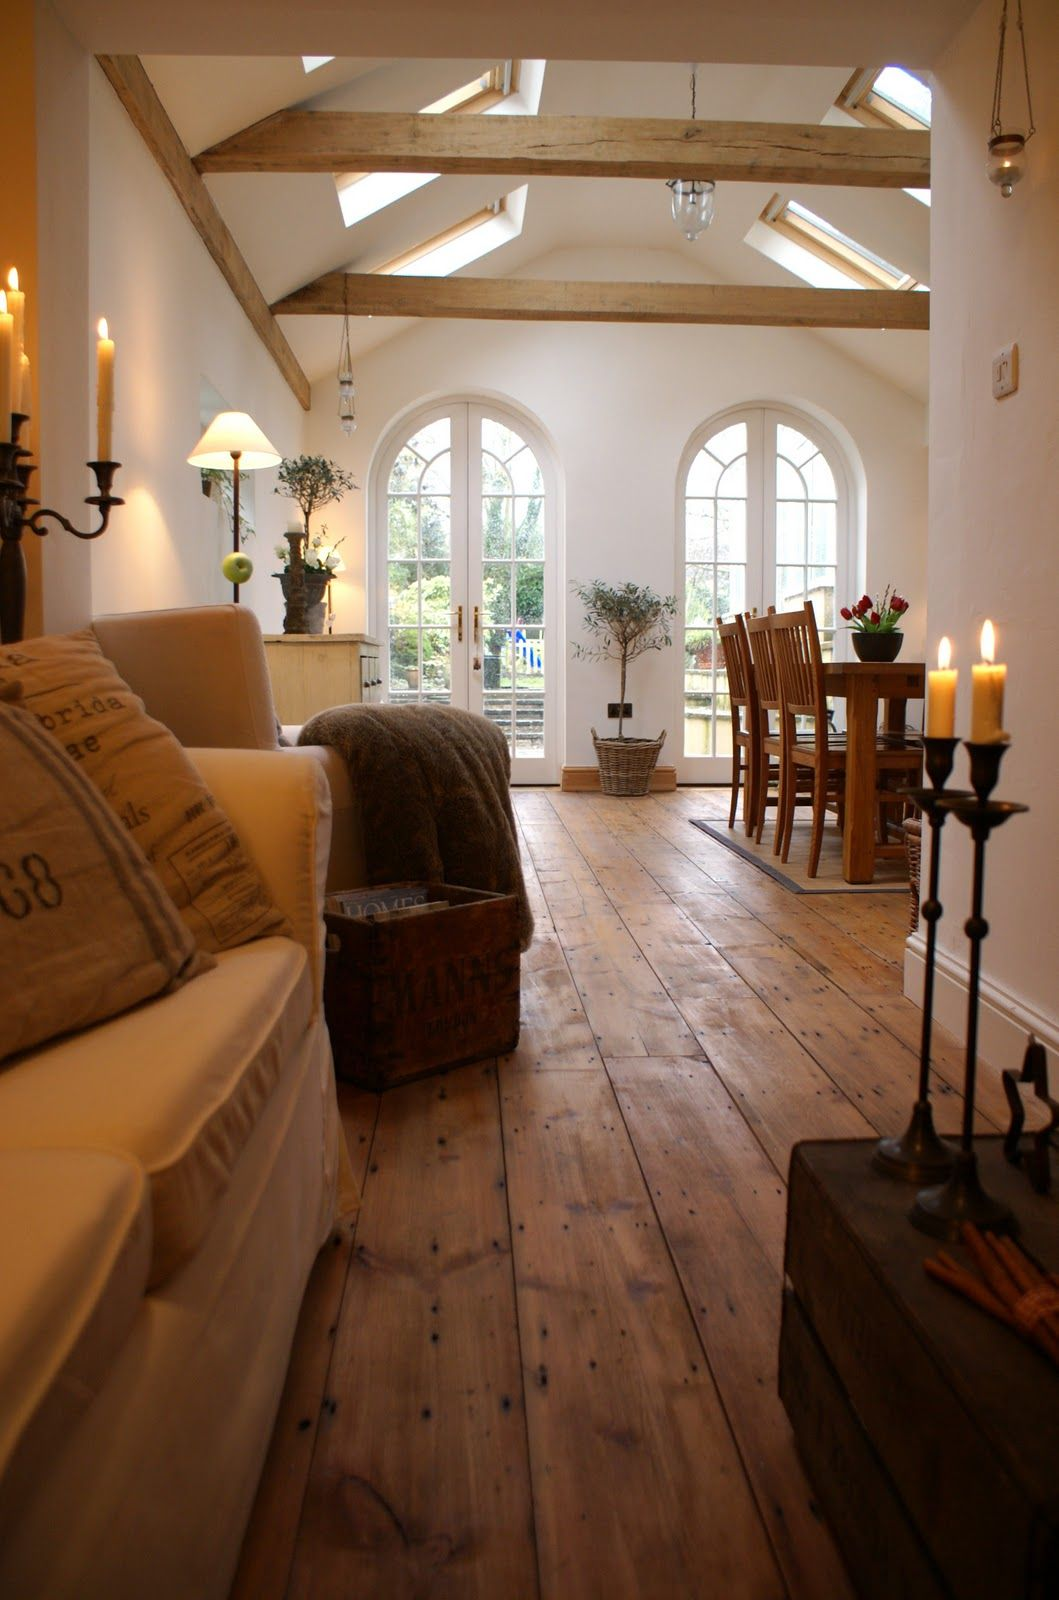 Really Like The Vaulted Ceiling, Beams, Skylights, A D Wide Plank Floors.